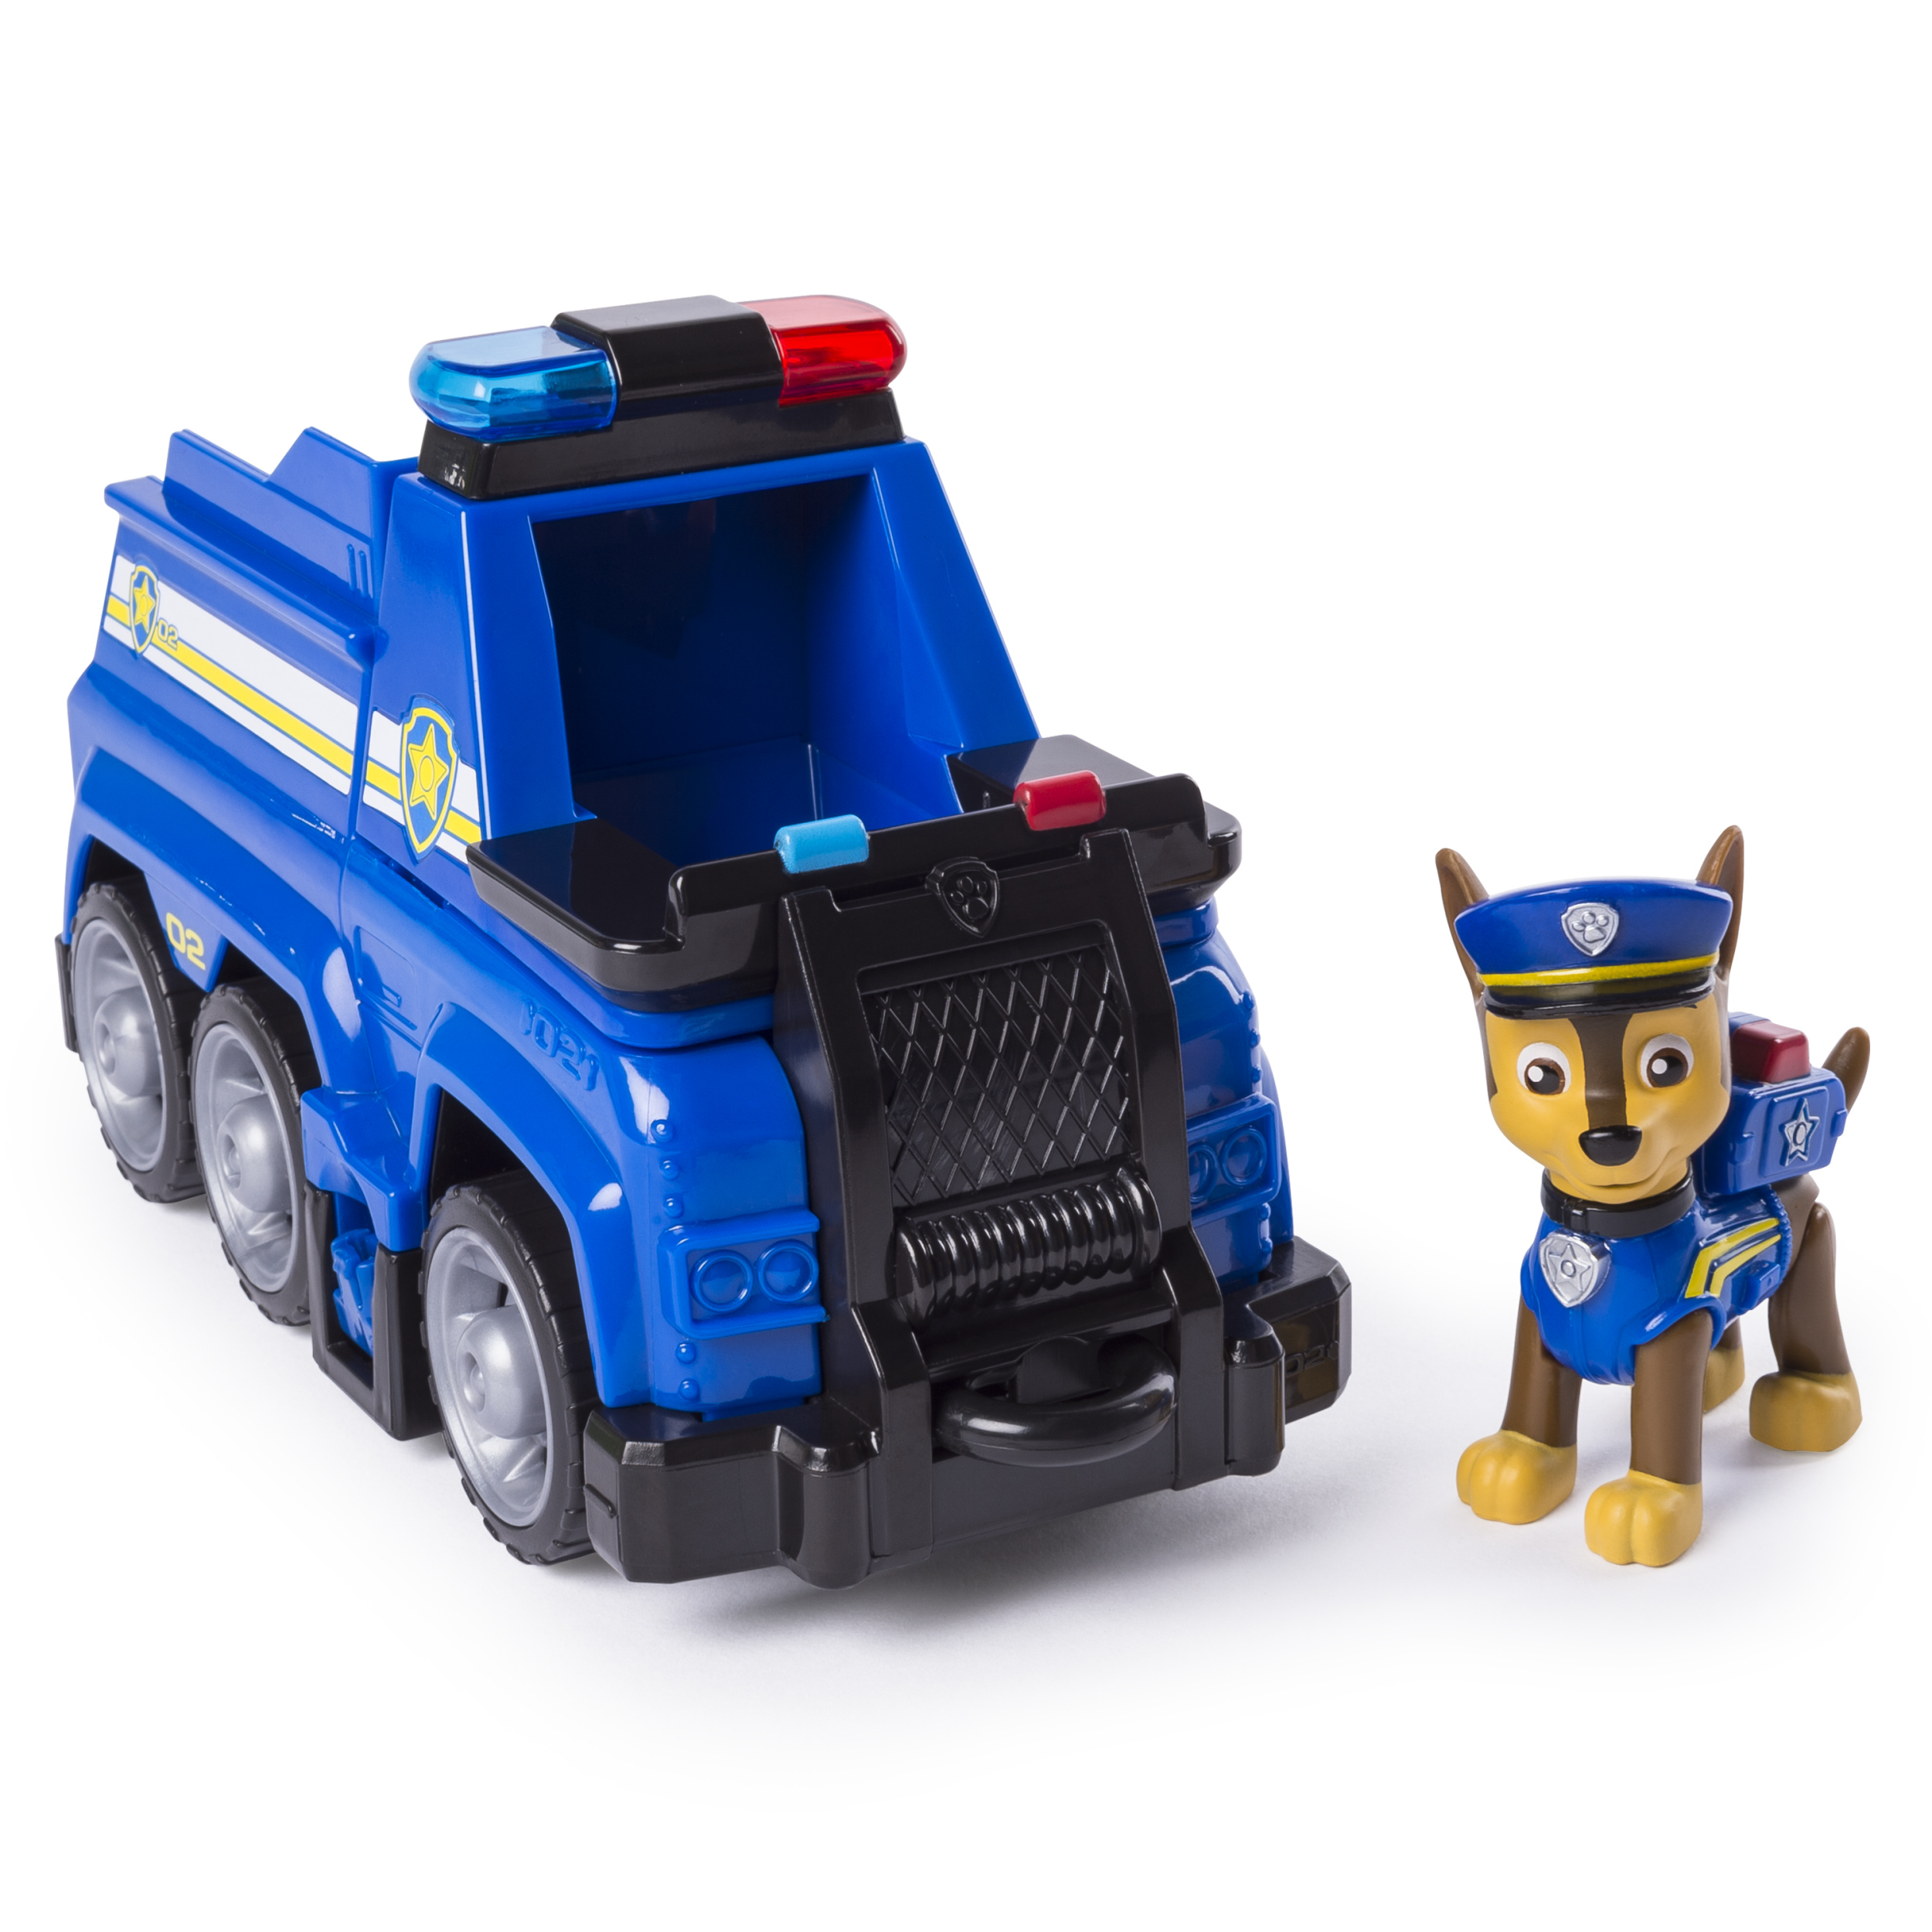 PAW Patrol Ultimate Rescue - Chase's Ultimate Rescue Police Cruiser with Lifting Seat and Fold-out Barricade, for Ages 3 and Up